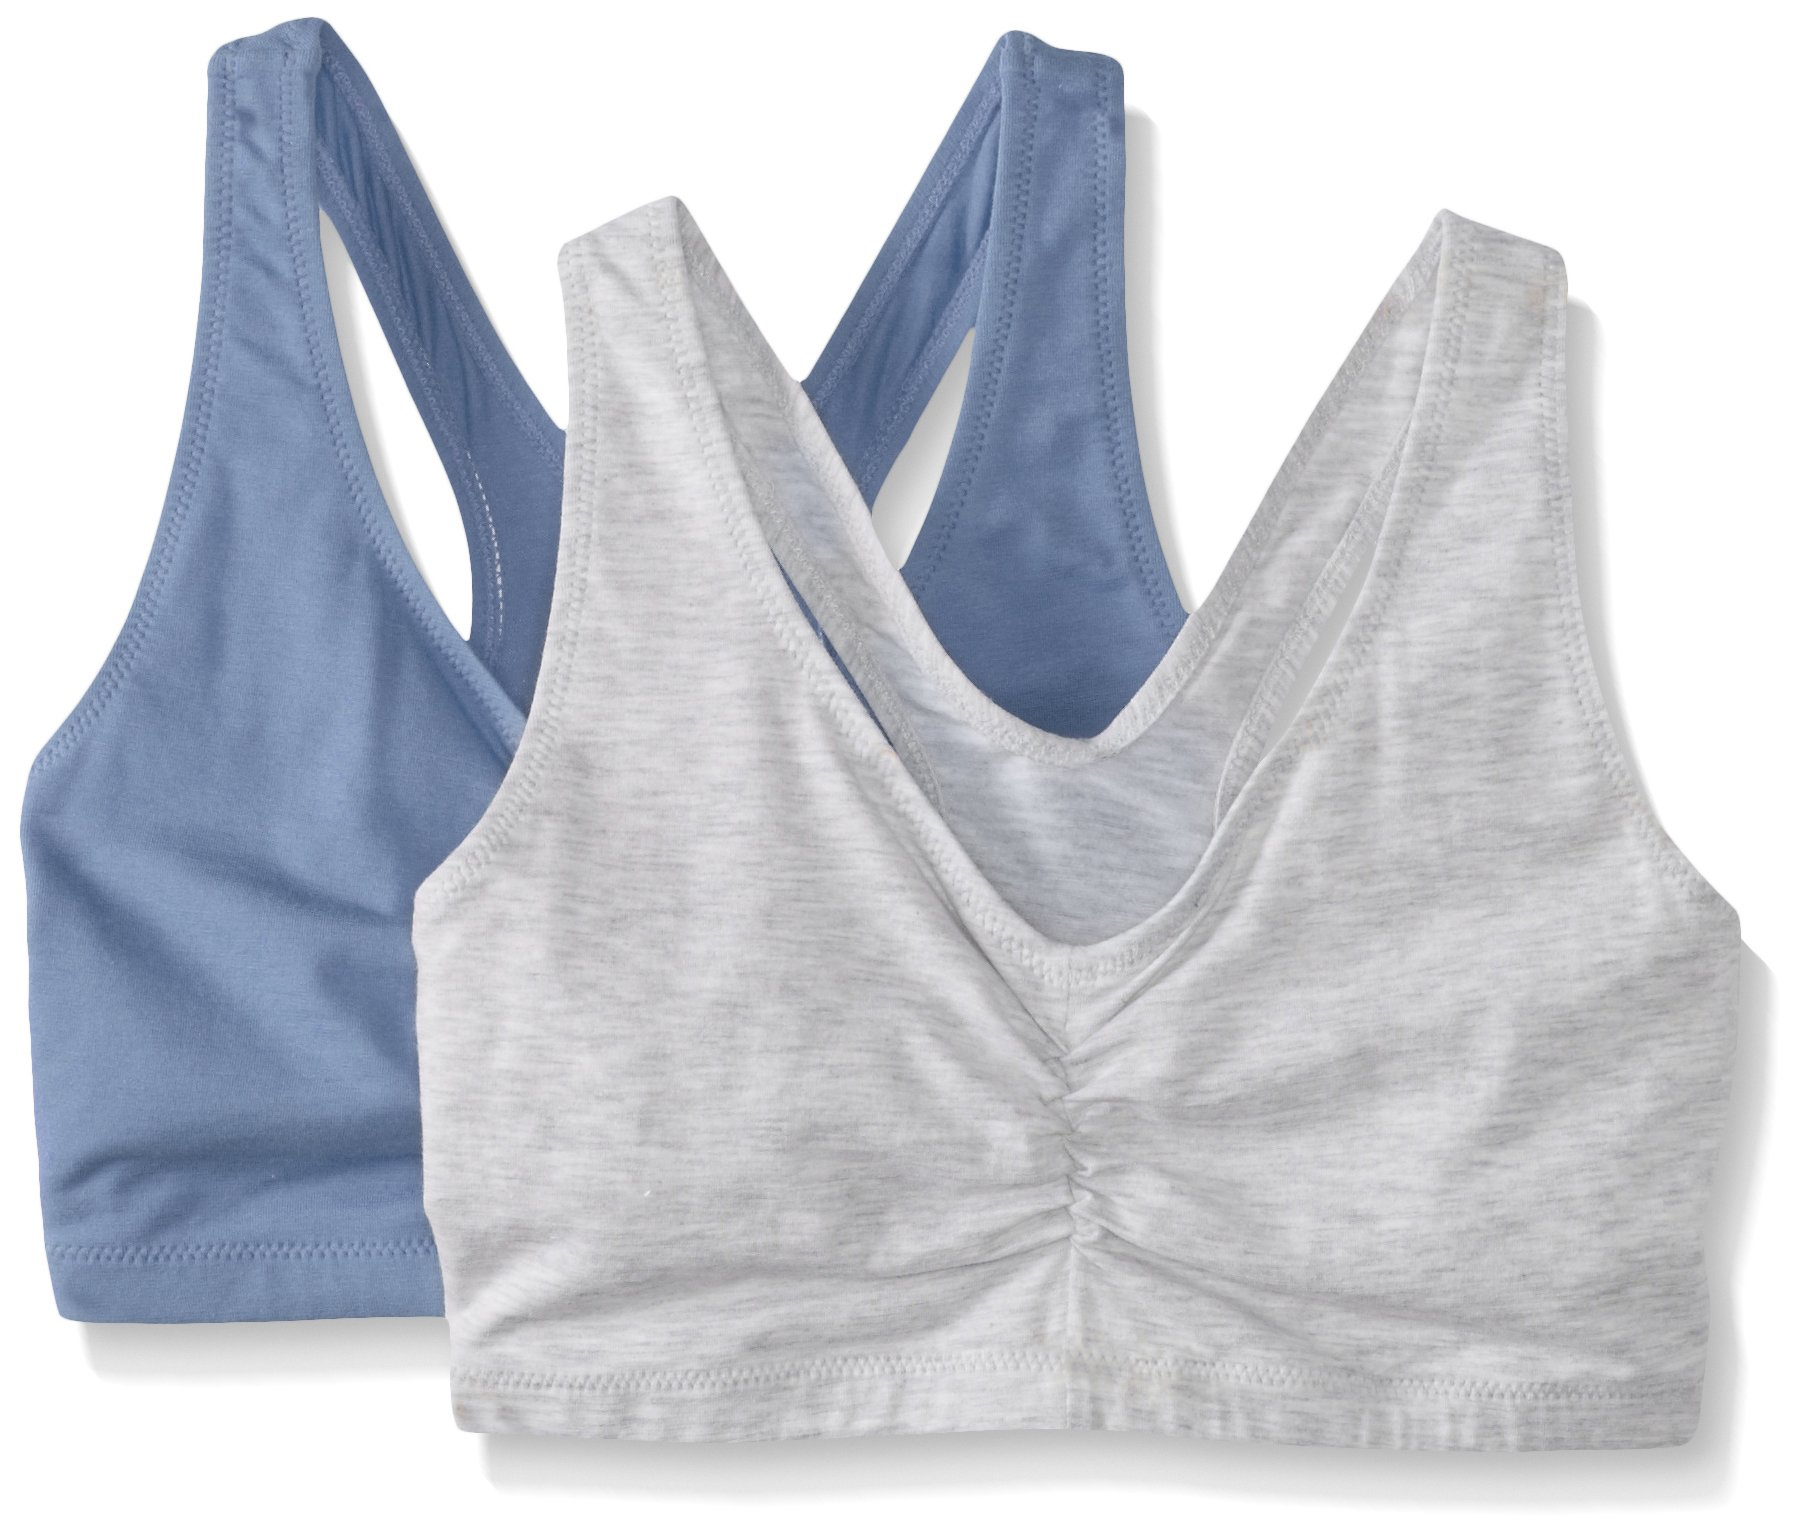 Hanes Women's Comfort-Blend Flex Fit Pullover Bra (Pack of 2),Heather Grey/Denim Blue Heather,Small